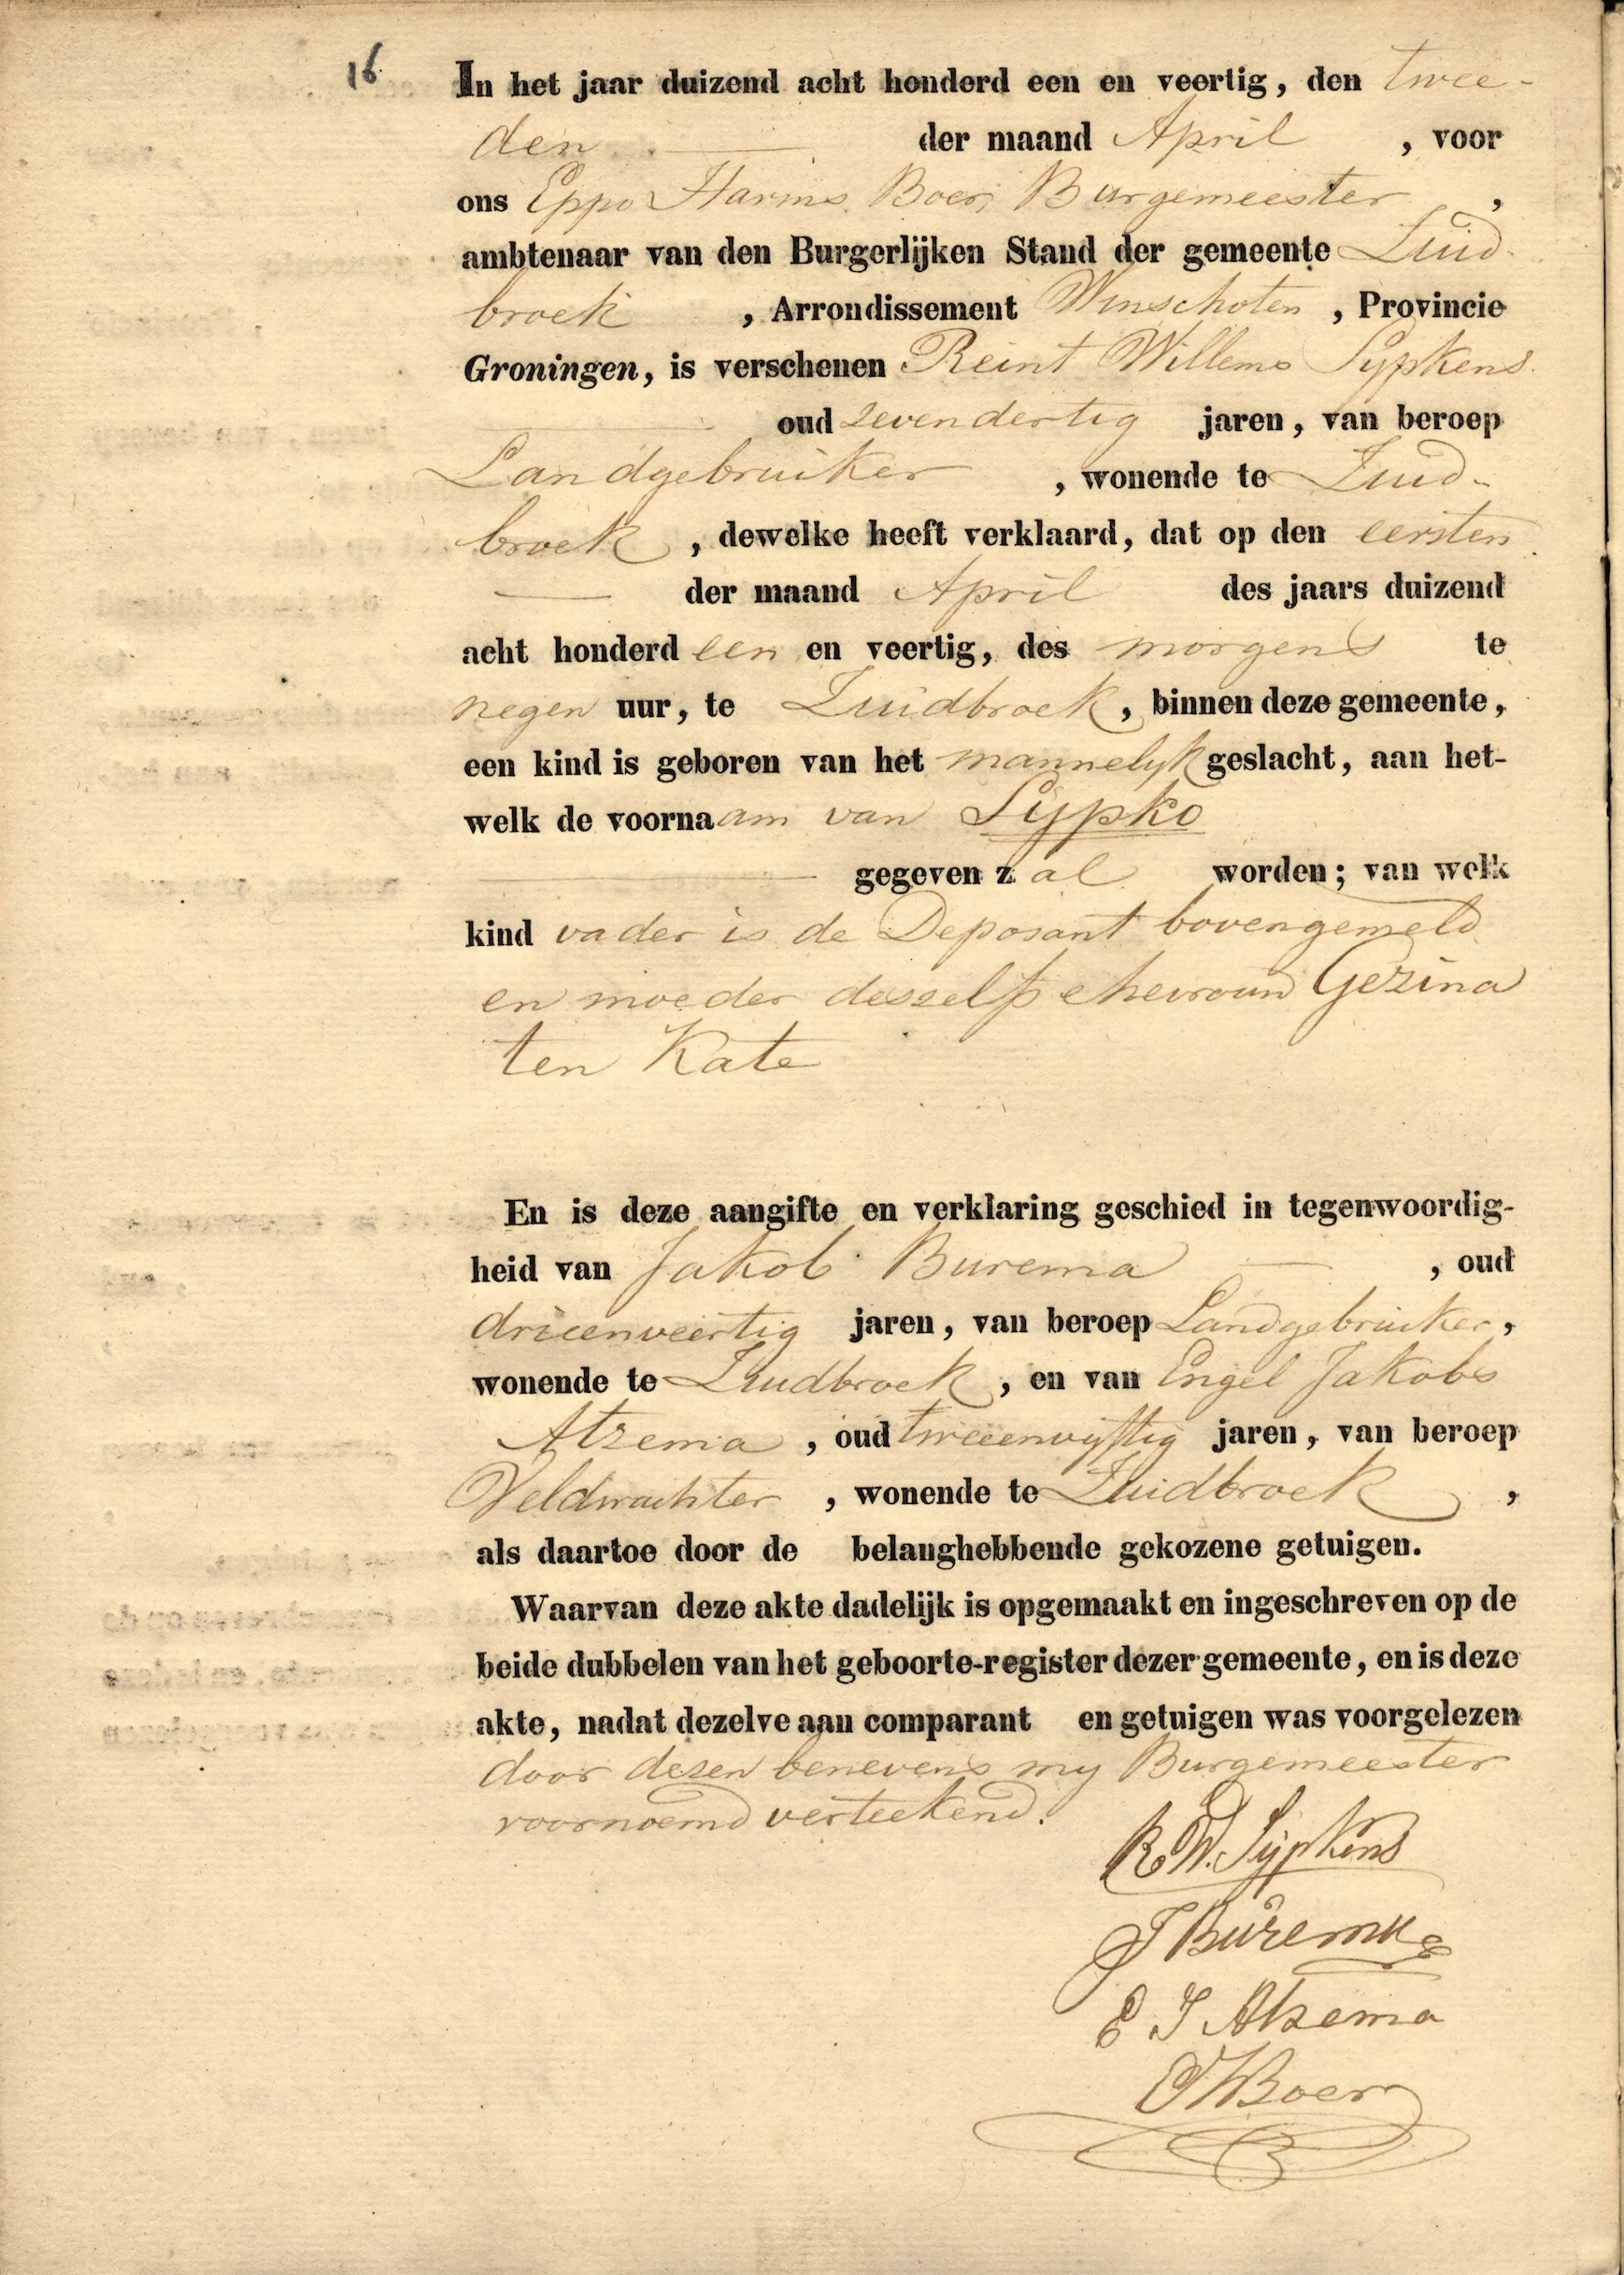 Sypko sypkens 1841 1907 find a grave memorial this is the birth certificate for sypko sypkens aiddatafo Gallery